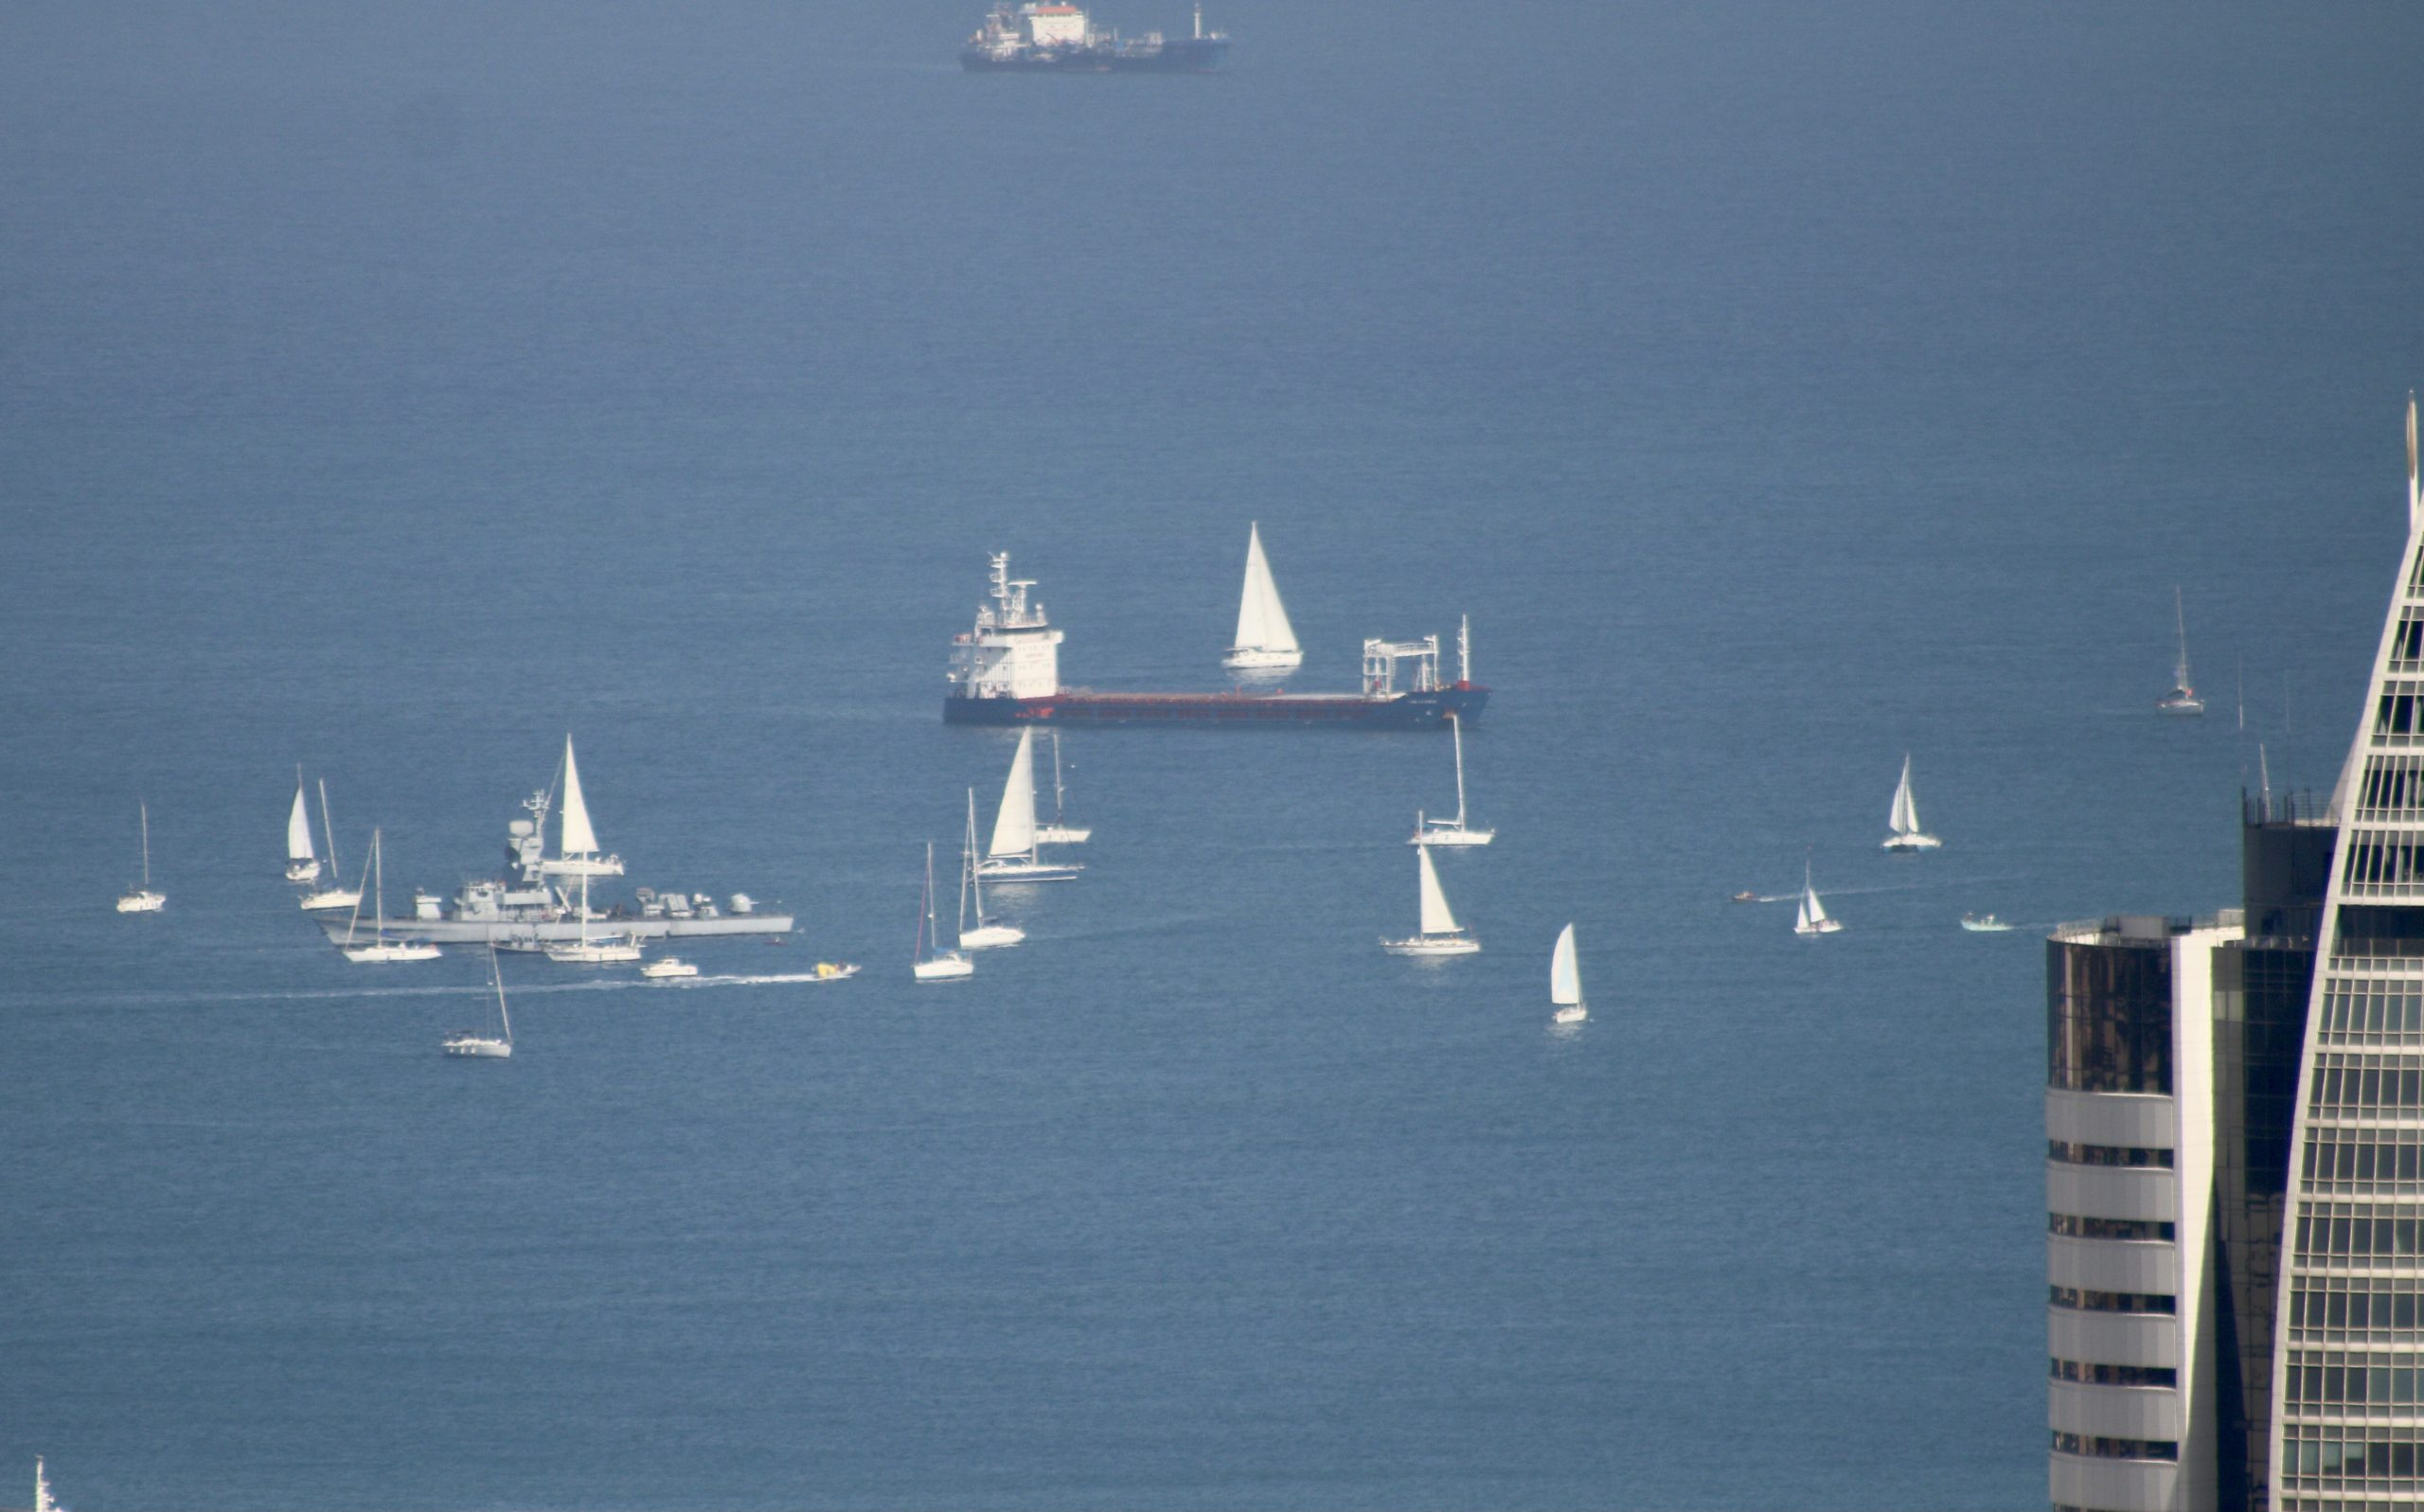 Haifa: Sailboats Greeting Israel Navy Patrol Ship